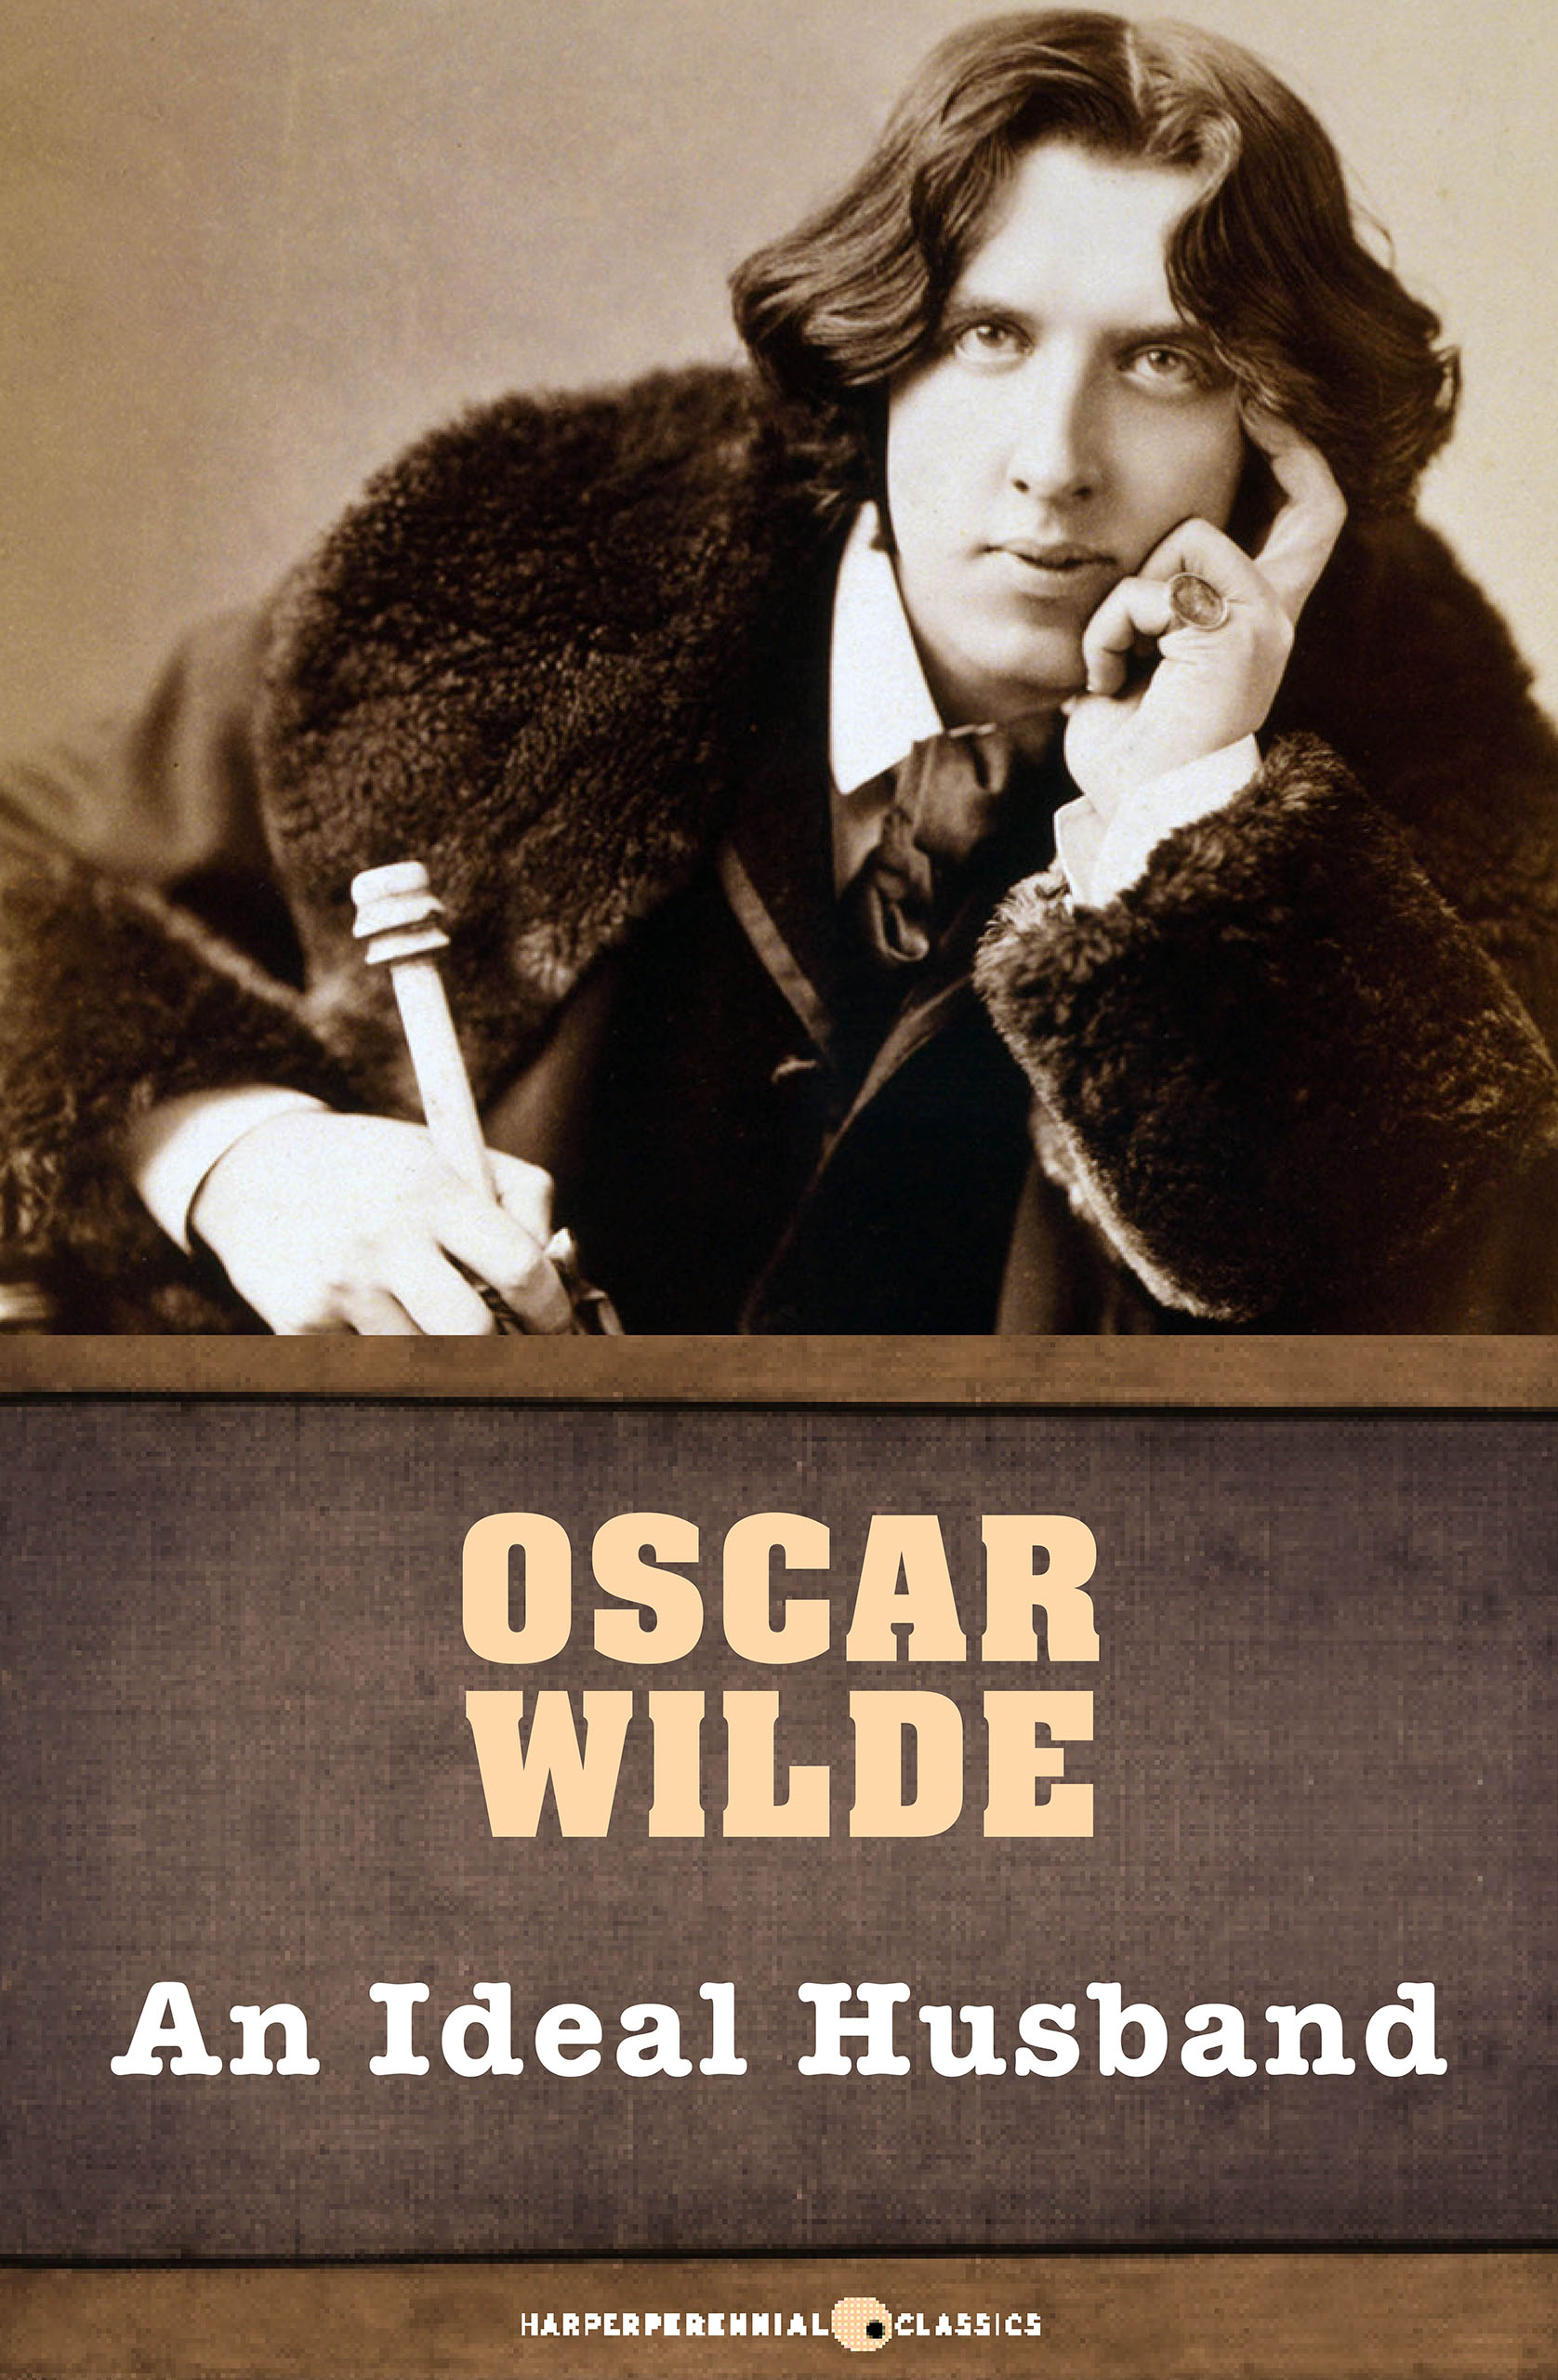 an analysis of the play an ideal husband by oscar wilde An ideal husband study guide contains a biography of oscar wilde, literature essays, a complete e-text, quiz questions, major themes, characters, and a full summary and analysis.